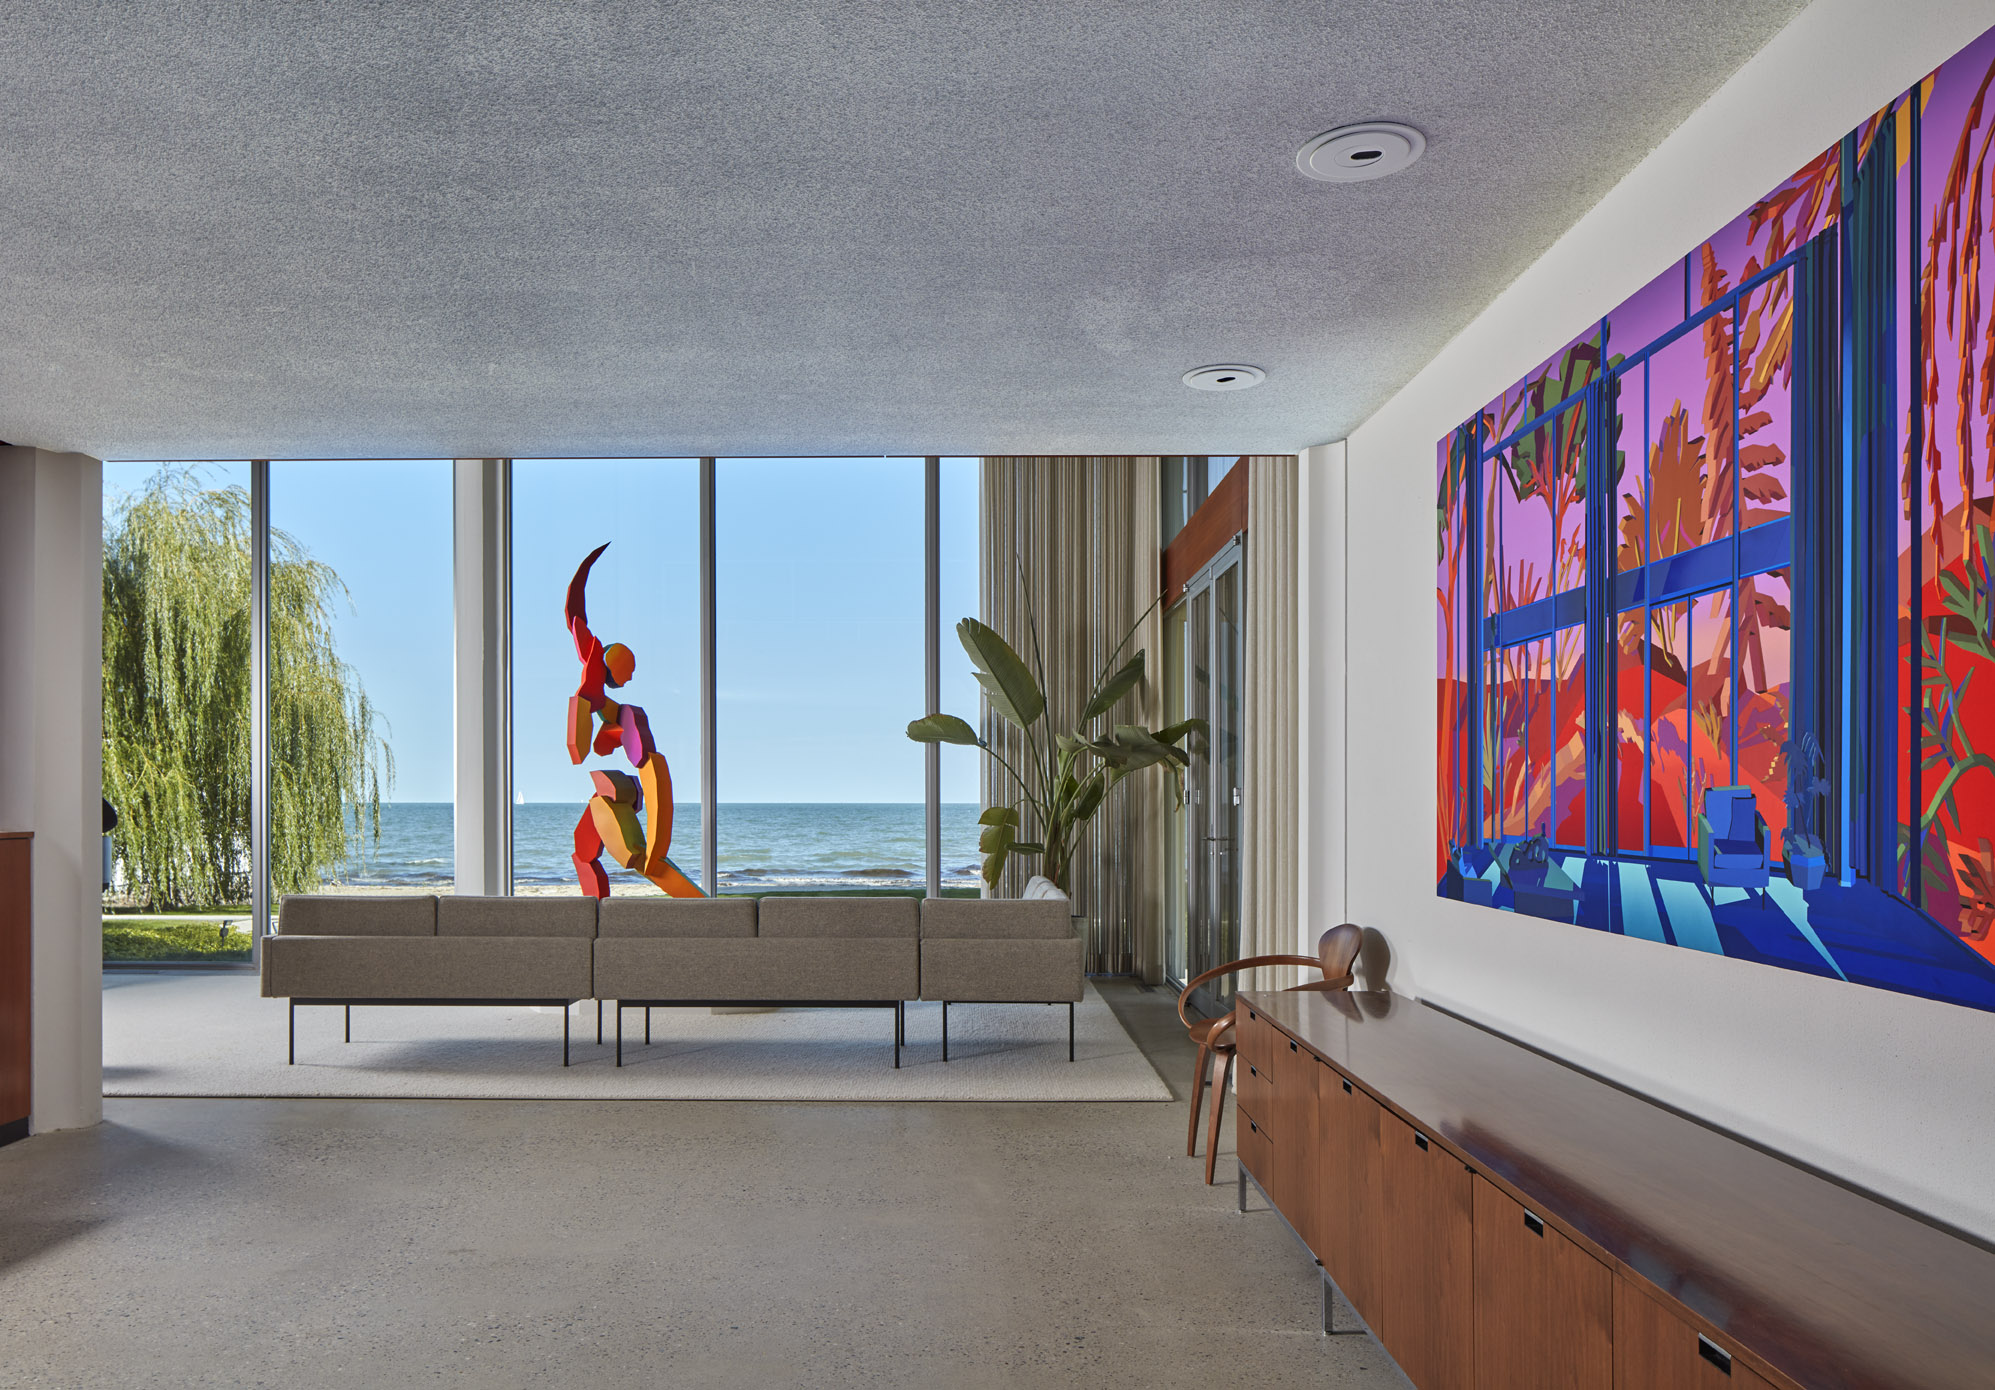 view of a lake out a window with a colorful sculpture in Virtual Window